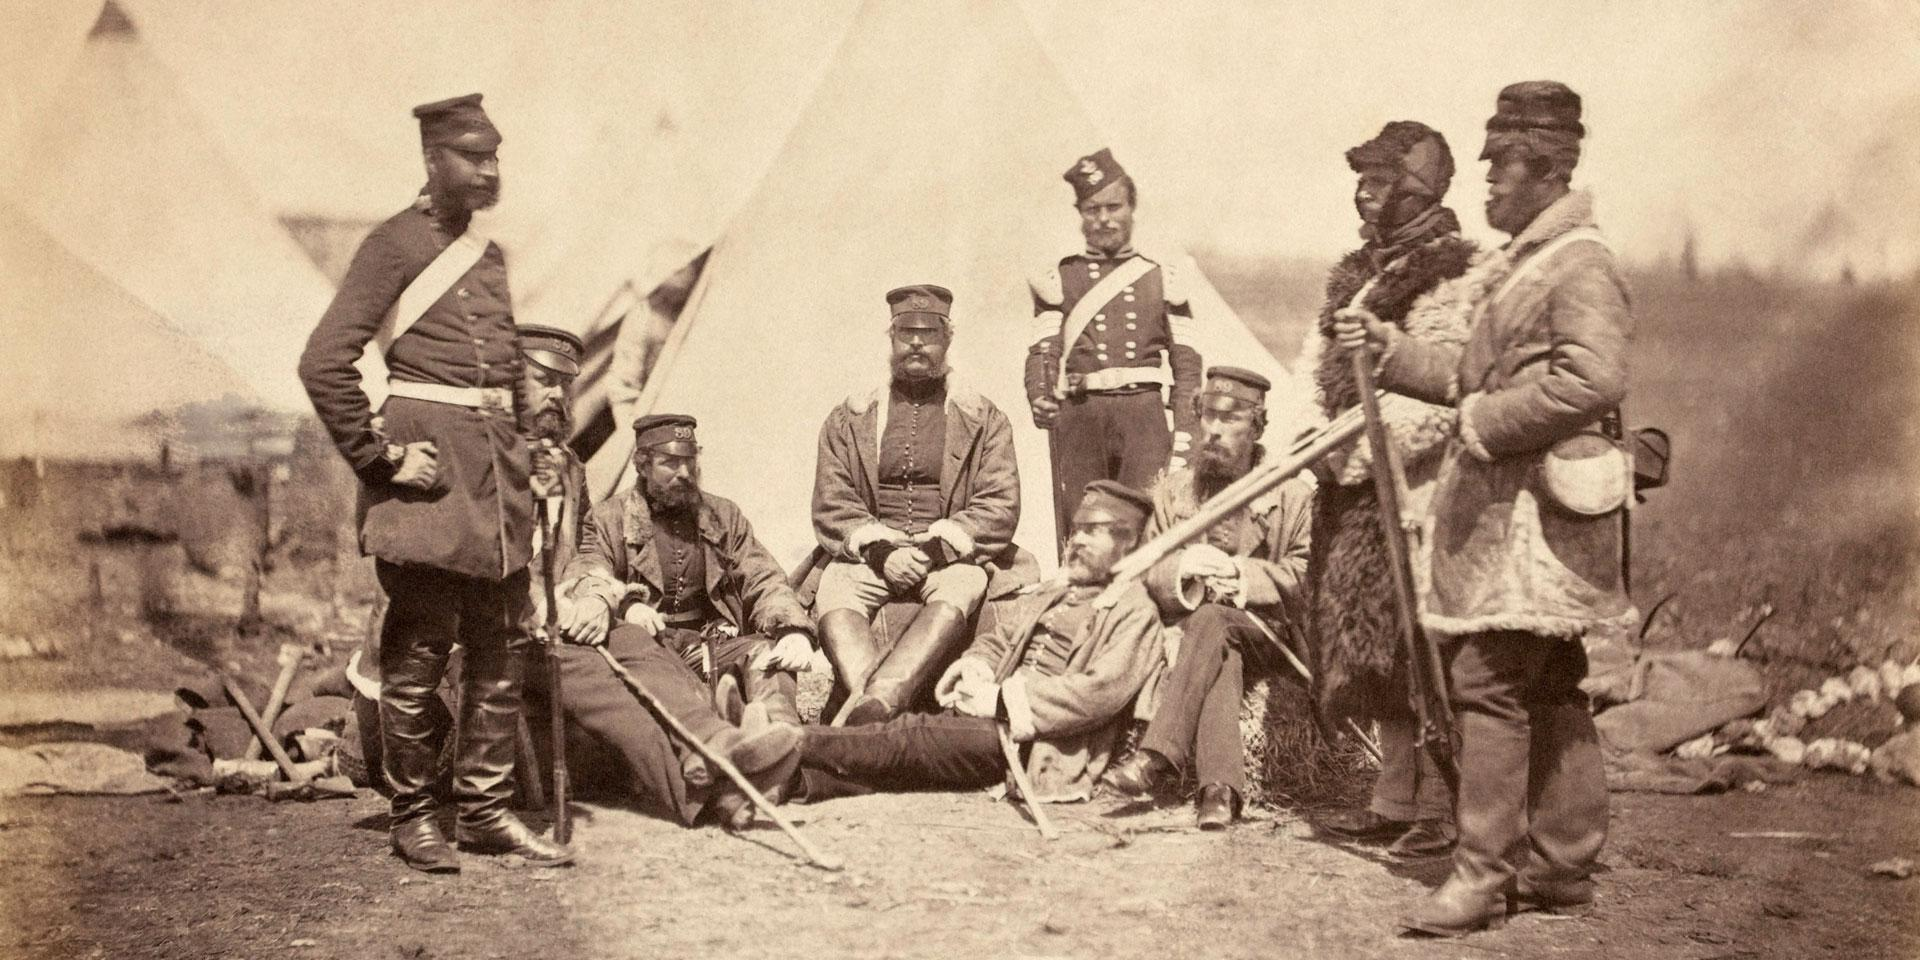 Officers and men of the 89th Regiment in the Crimea, 1855